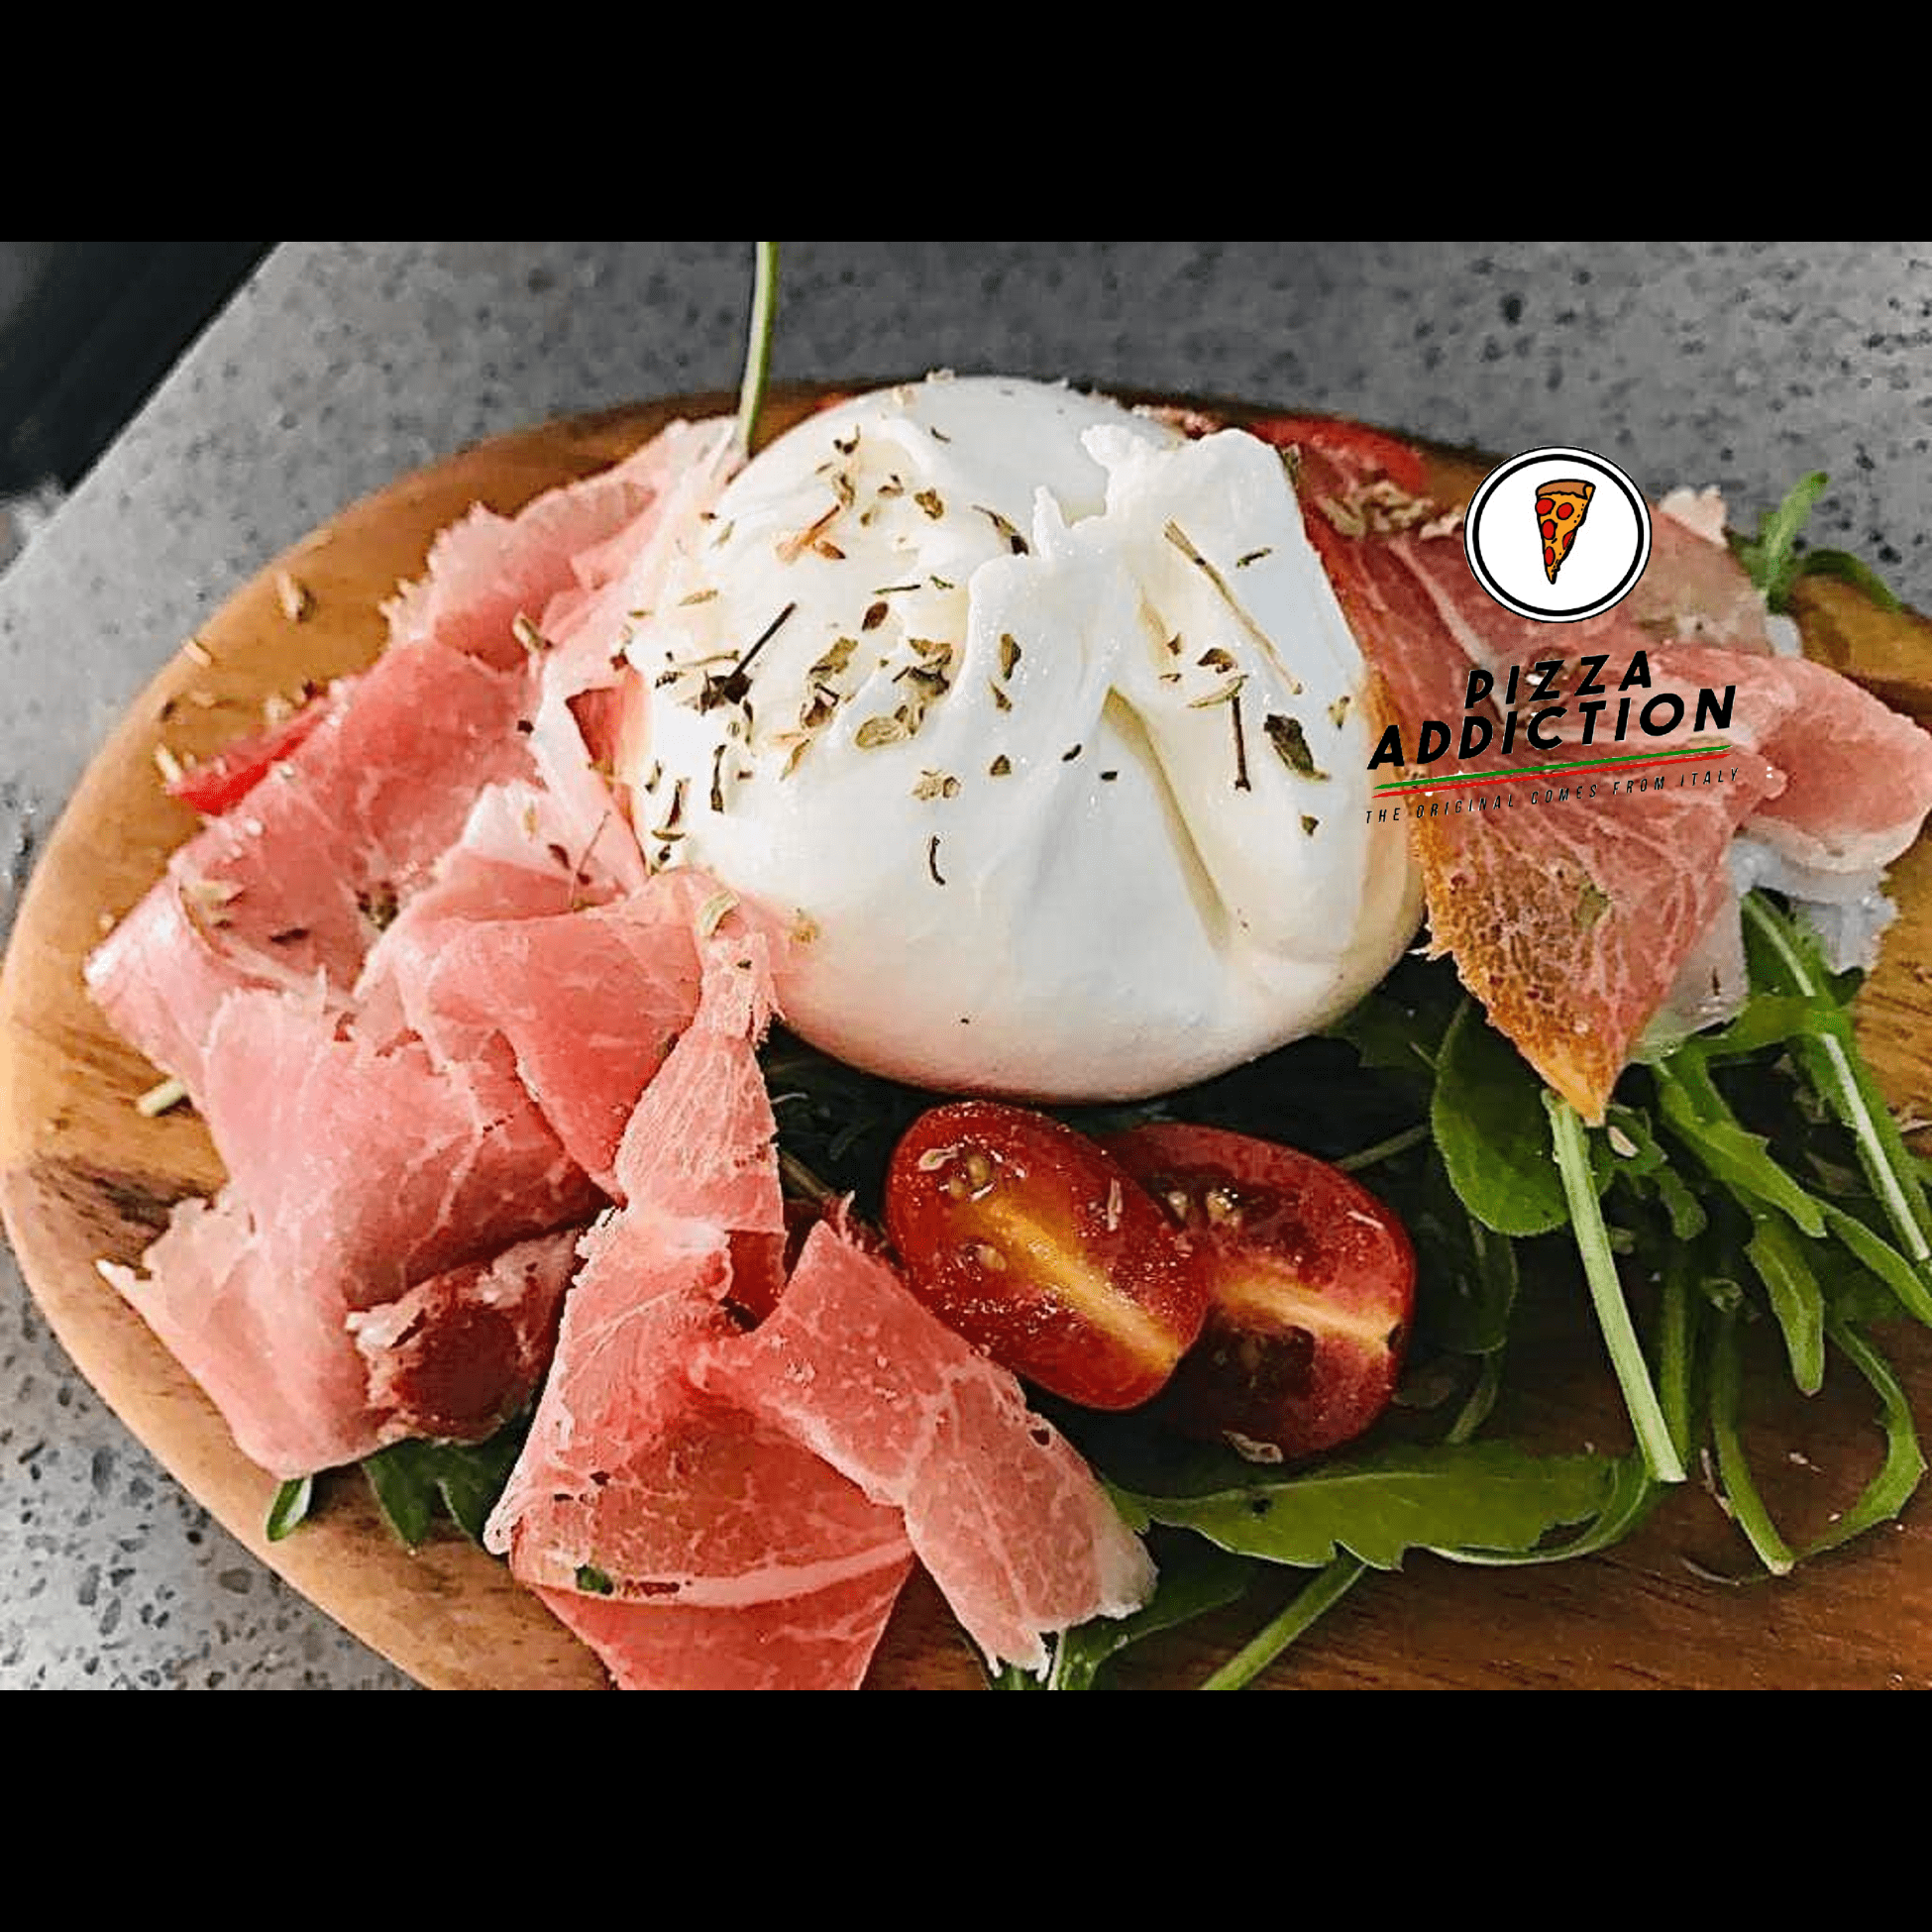 Super fresh burrata cheese that overflows with delicious milky content